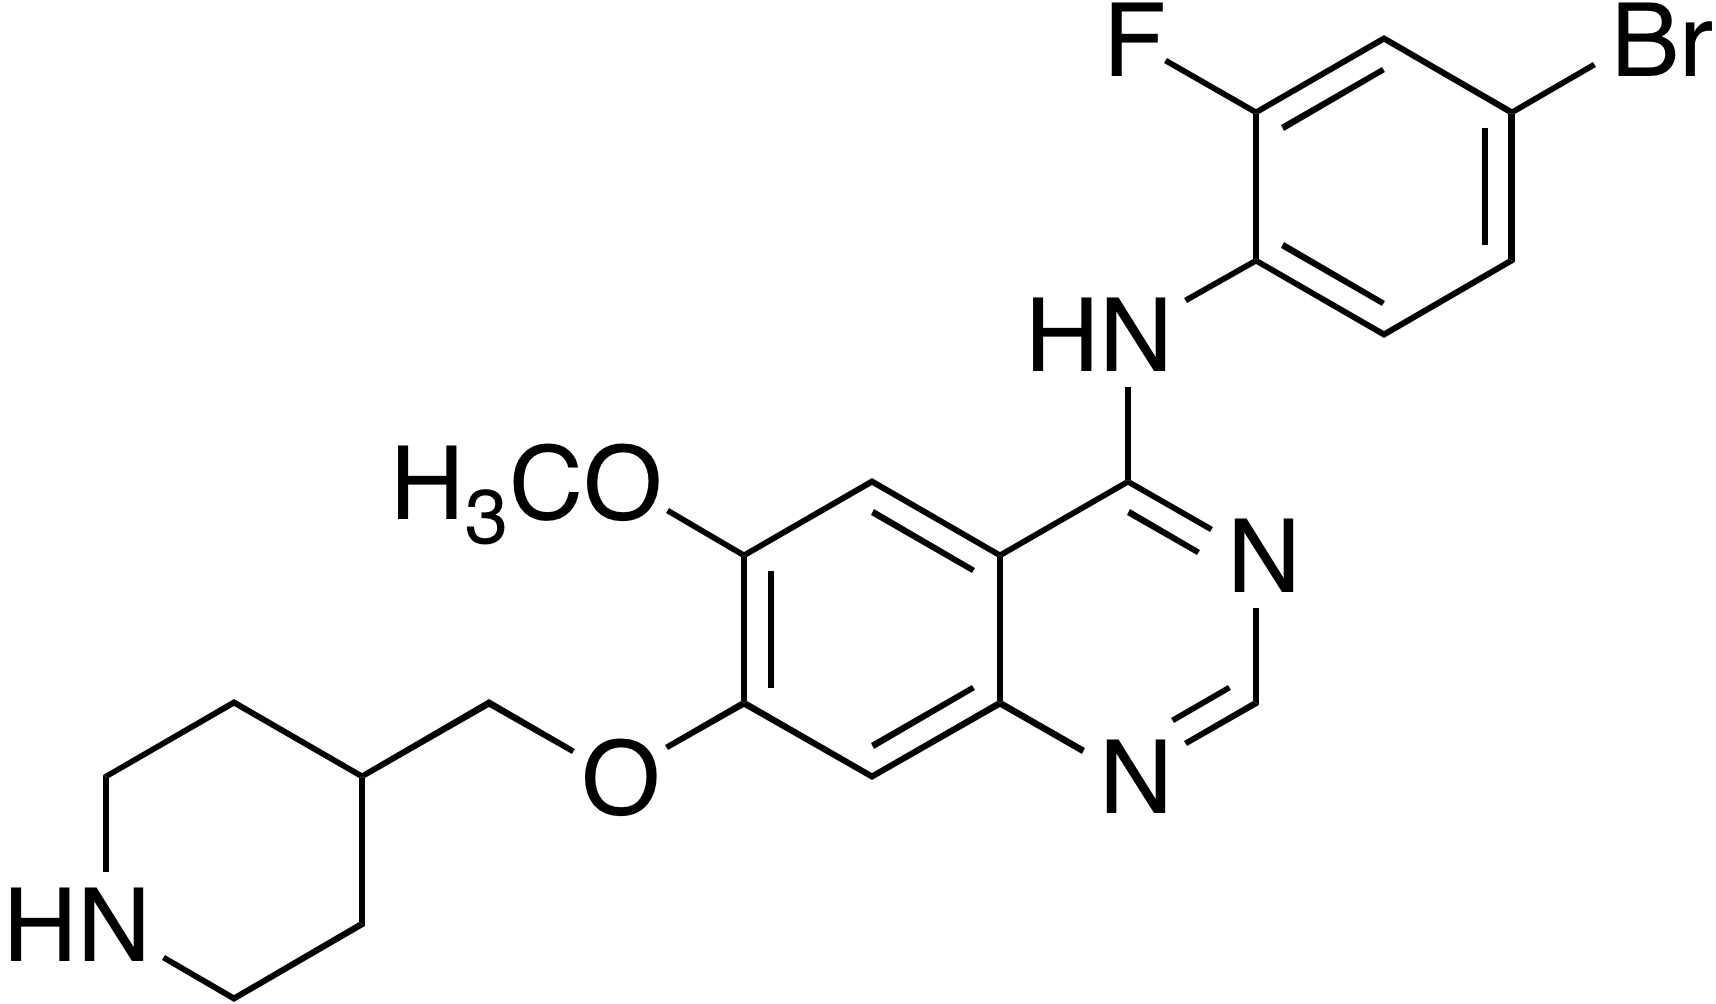 N-Demethyl Vandetanib